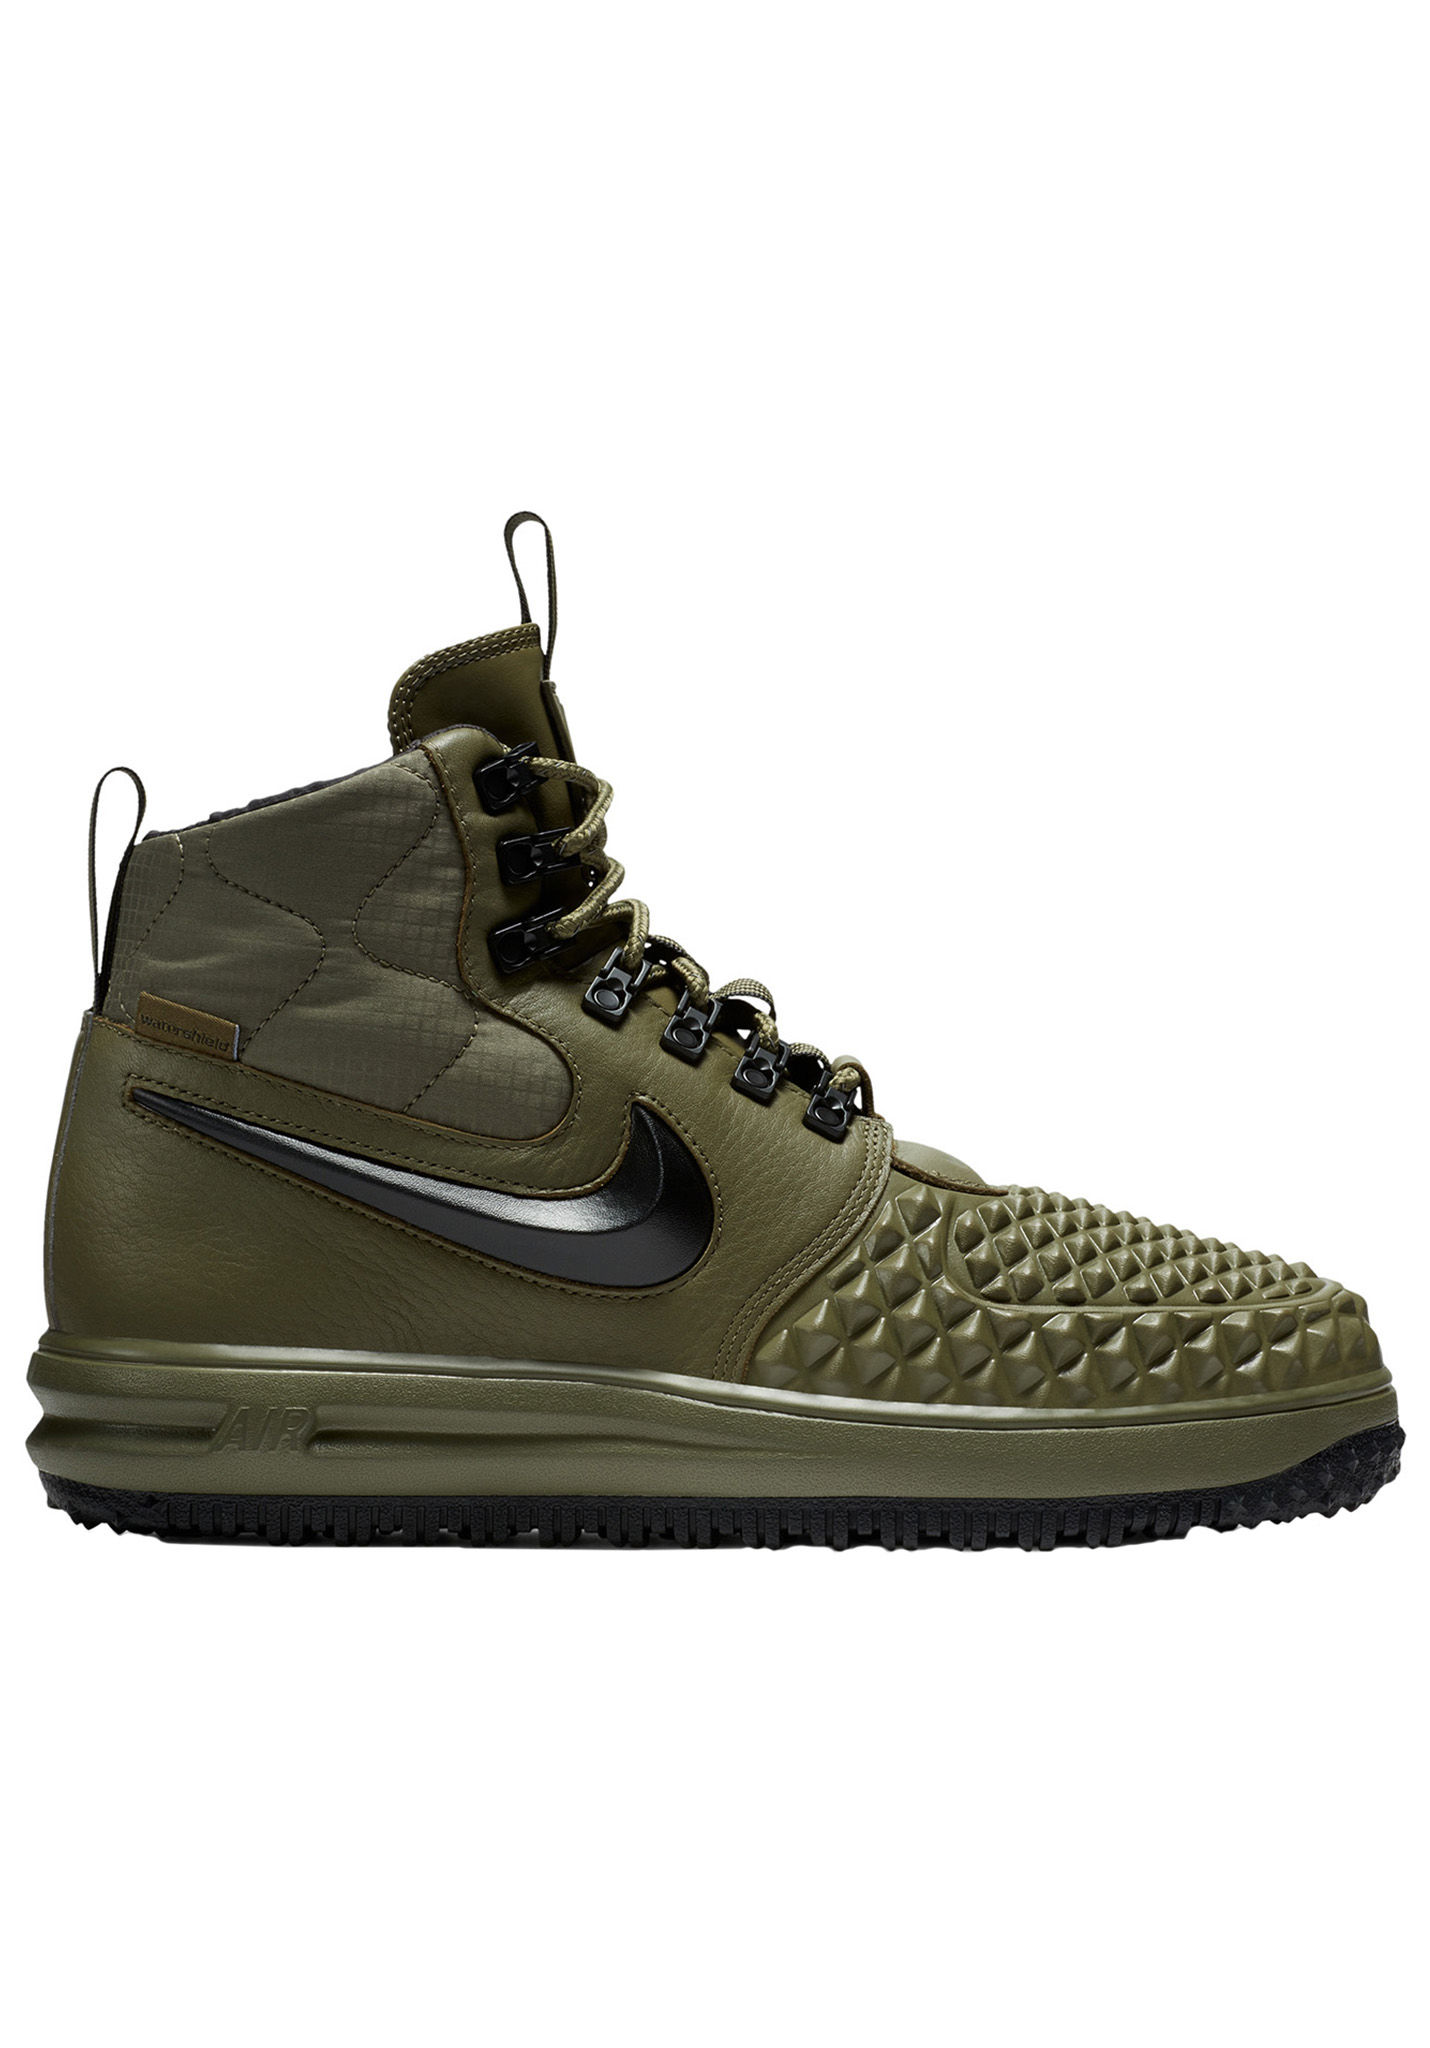 duckboot green